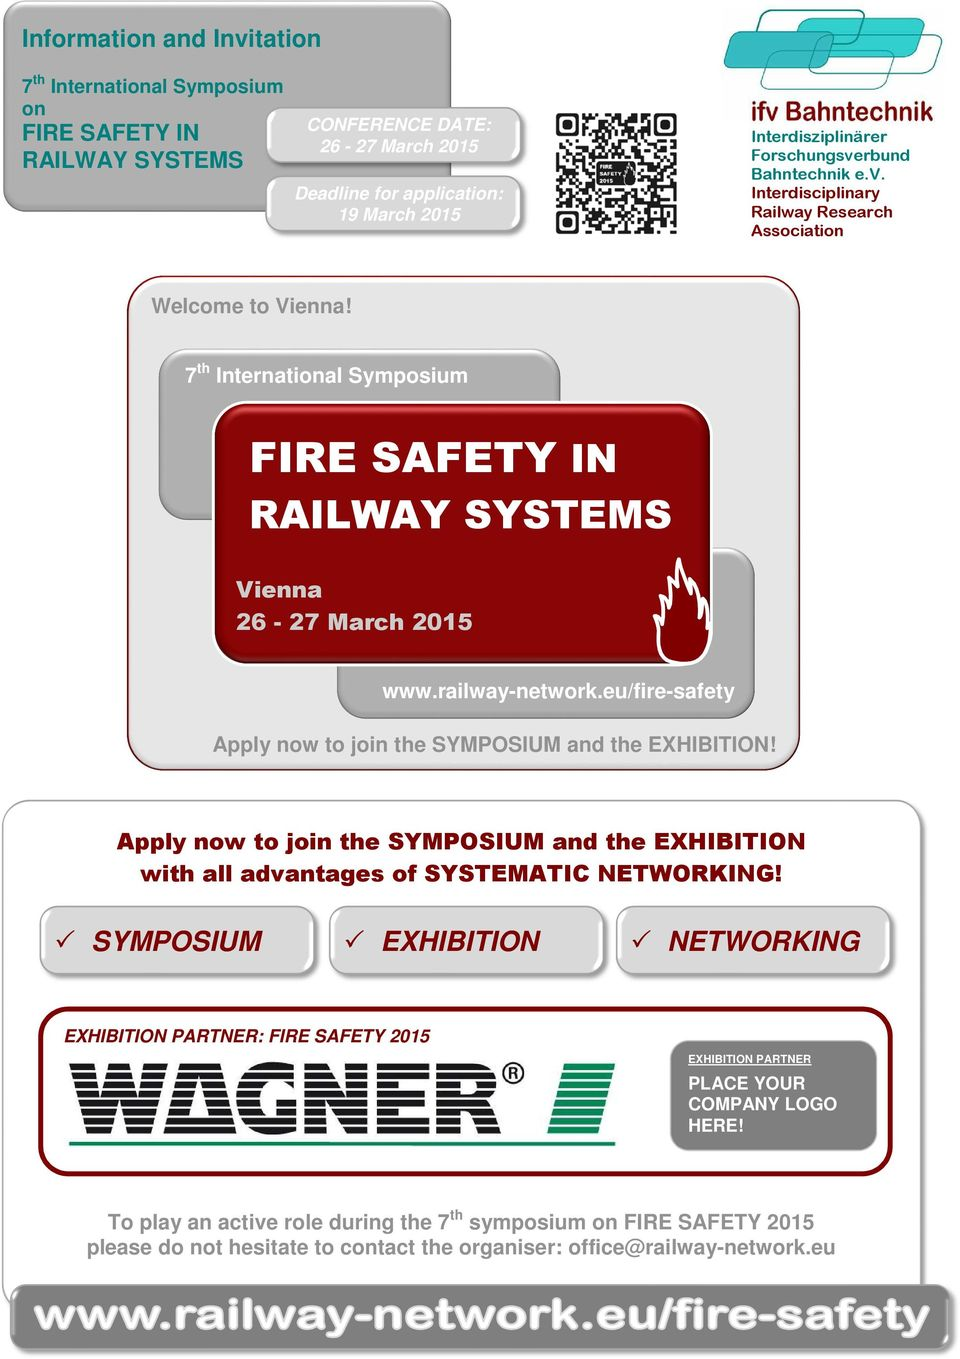 railwaynetwork.eu/firesafety Apply now to join the SYMPOSIUM and the EXHIBITION! Apply now to join the SYMPOSIUM and the EXHIBITION with all advantages of SYSTEMATIC NETWORKING!